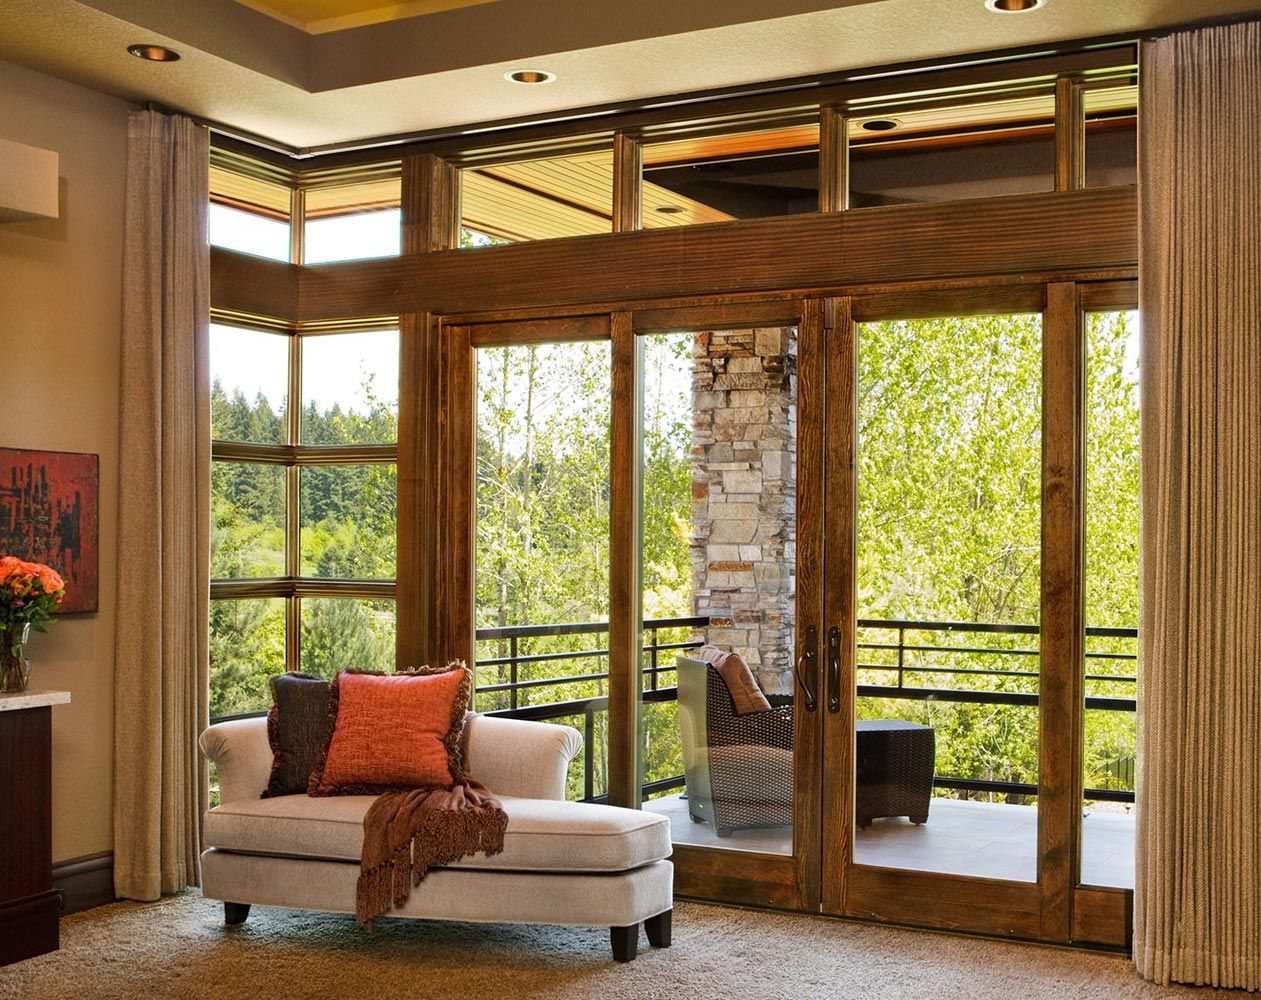 Michael Barclay Home Design on arnold home design, rosemont home design, brown home design, brooklyn home design, ohio home design, alabama home design, bethesda home design, oxford home design, cambridge home design, hamilton home design, garrison home design, dog home design, madison home design, barton home design, marshall home design, perry home design,